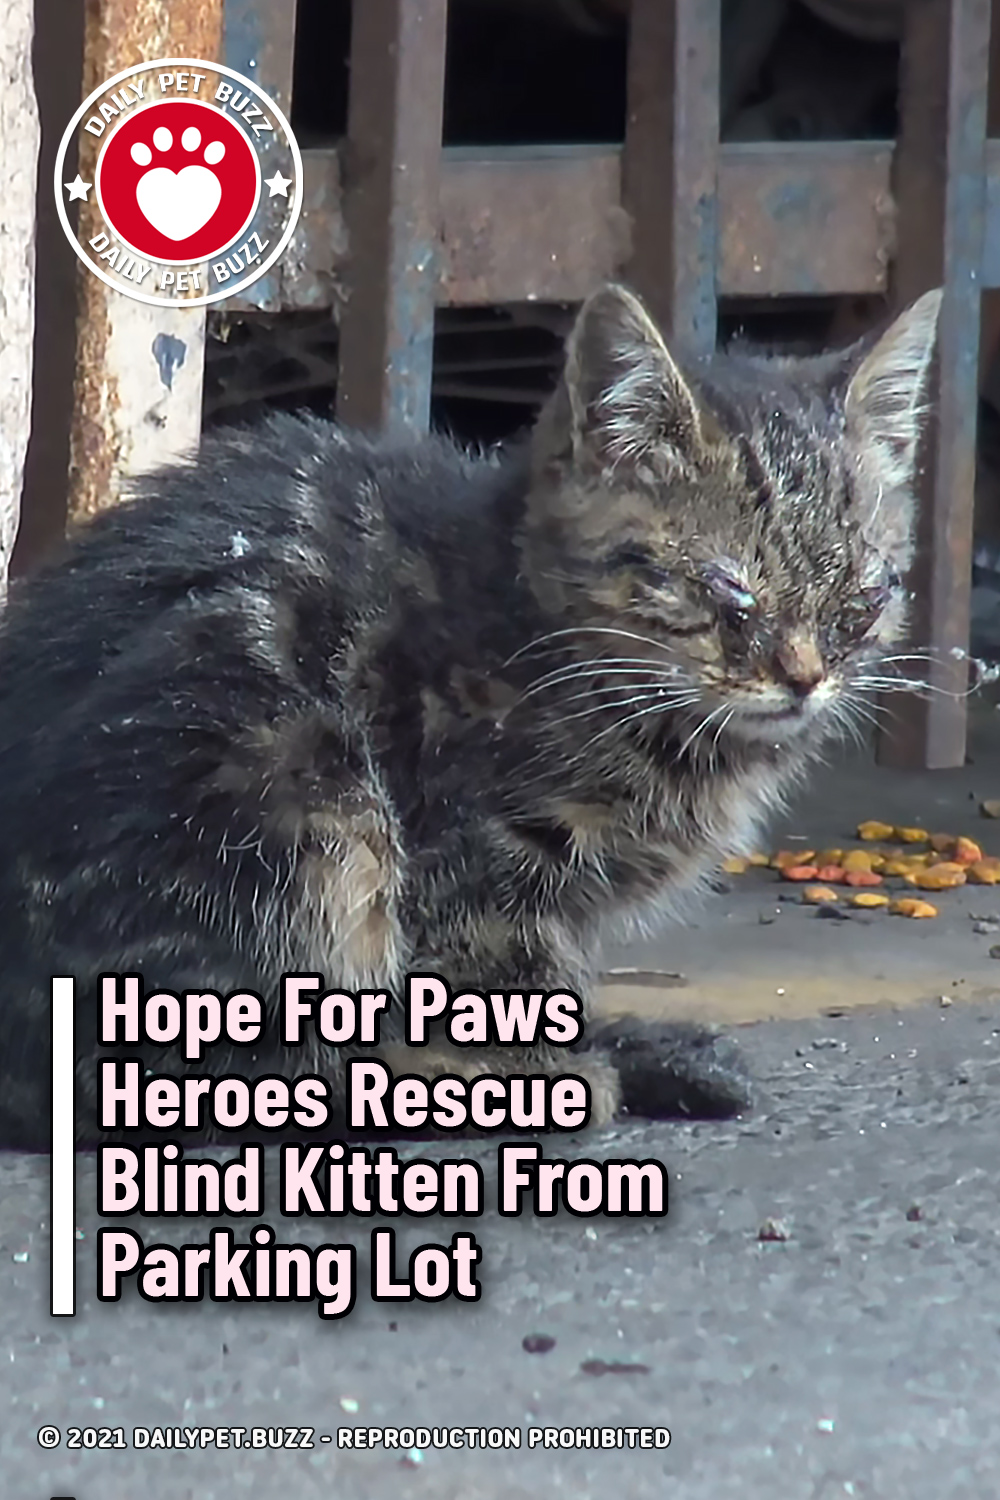 Hope For Paws Heroes Rescue Blind Kitten From Parking Lot